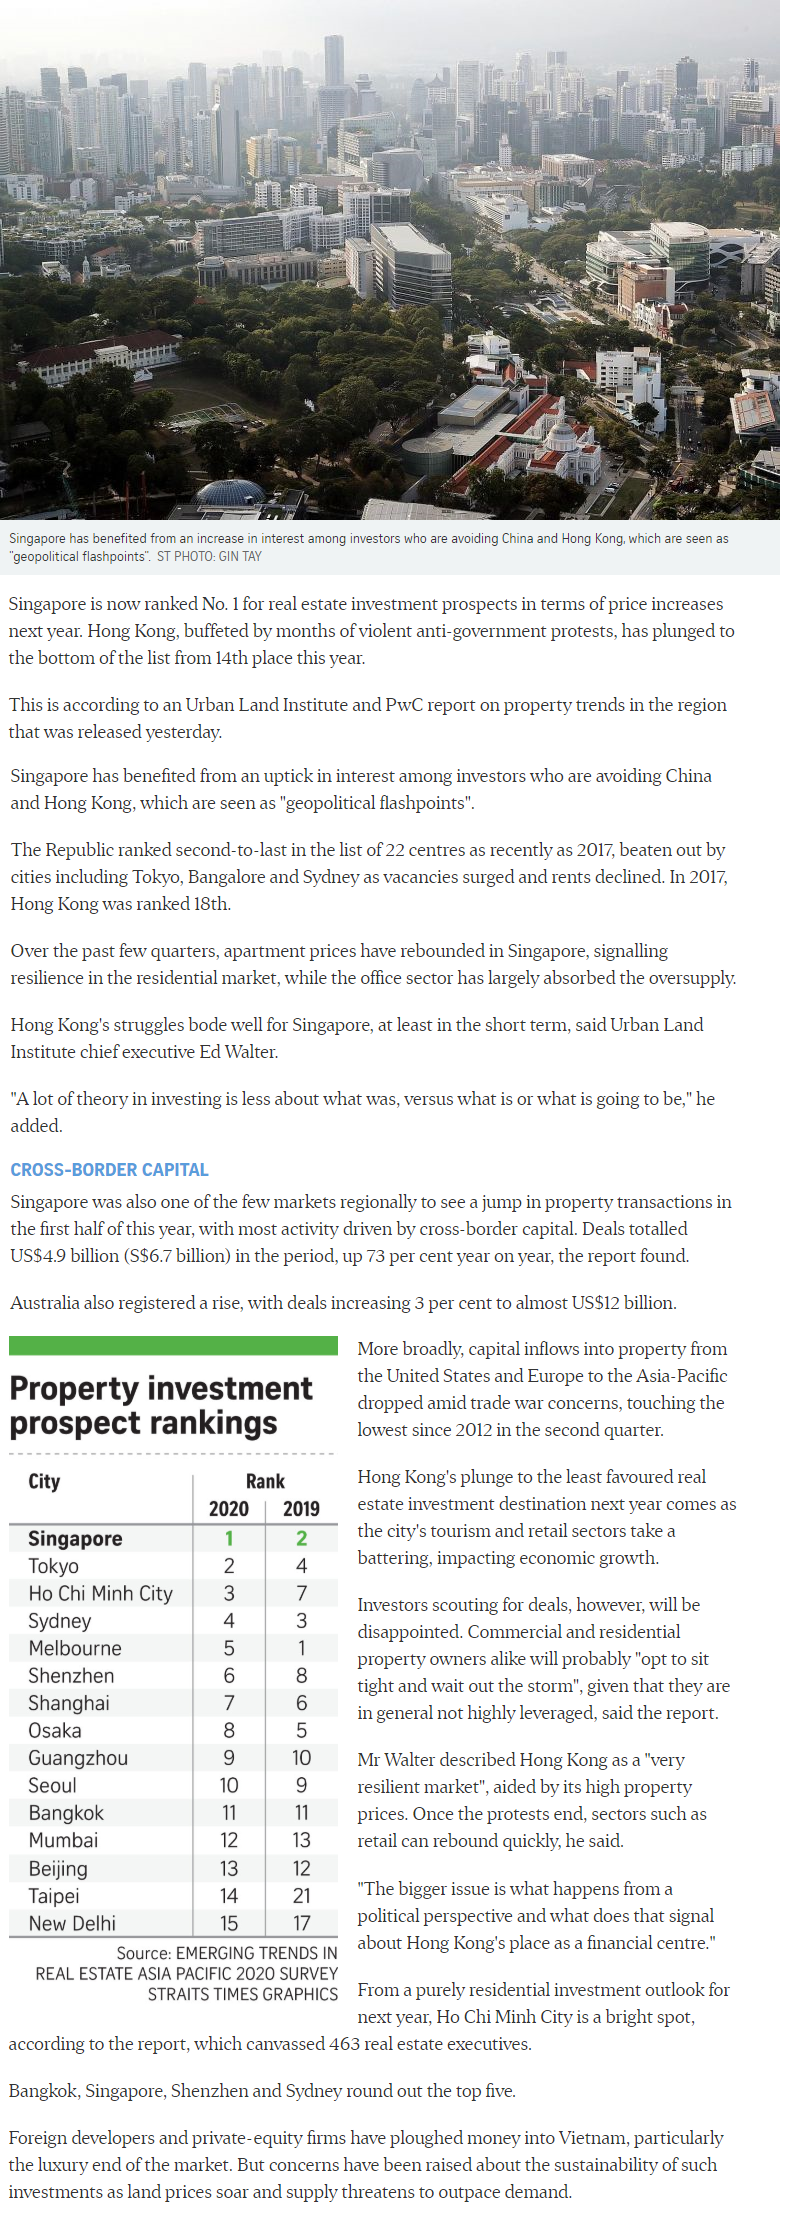 Peak Residence - Singapore Tops Region For Property Investment Prospects